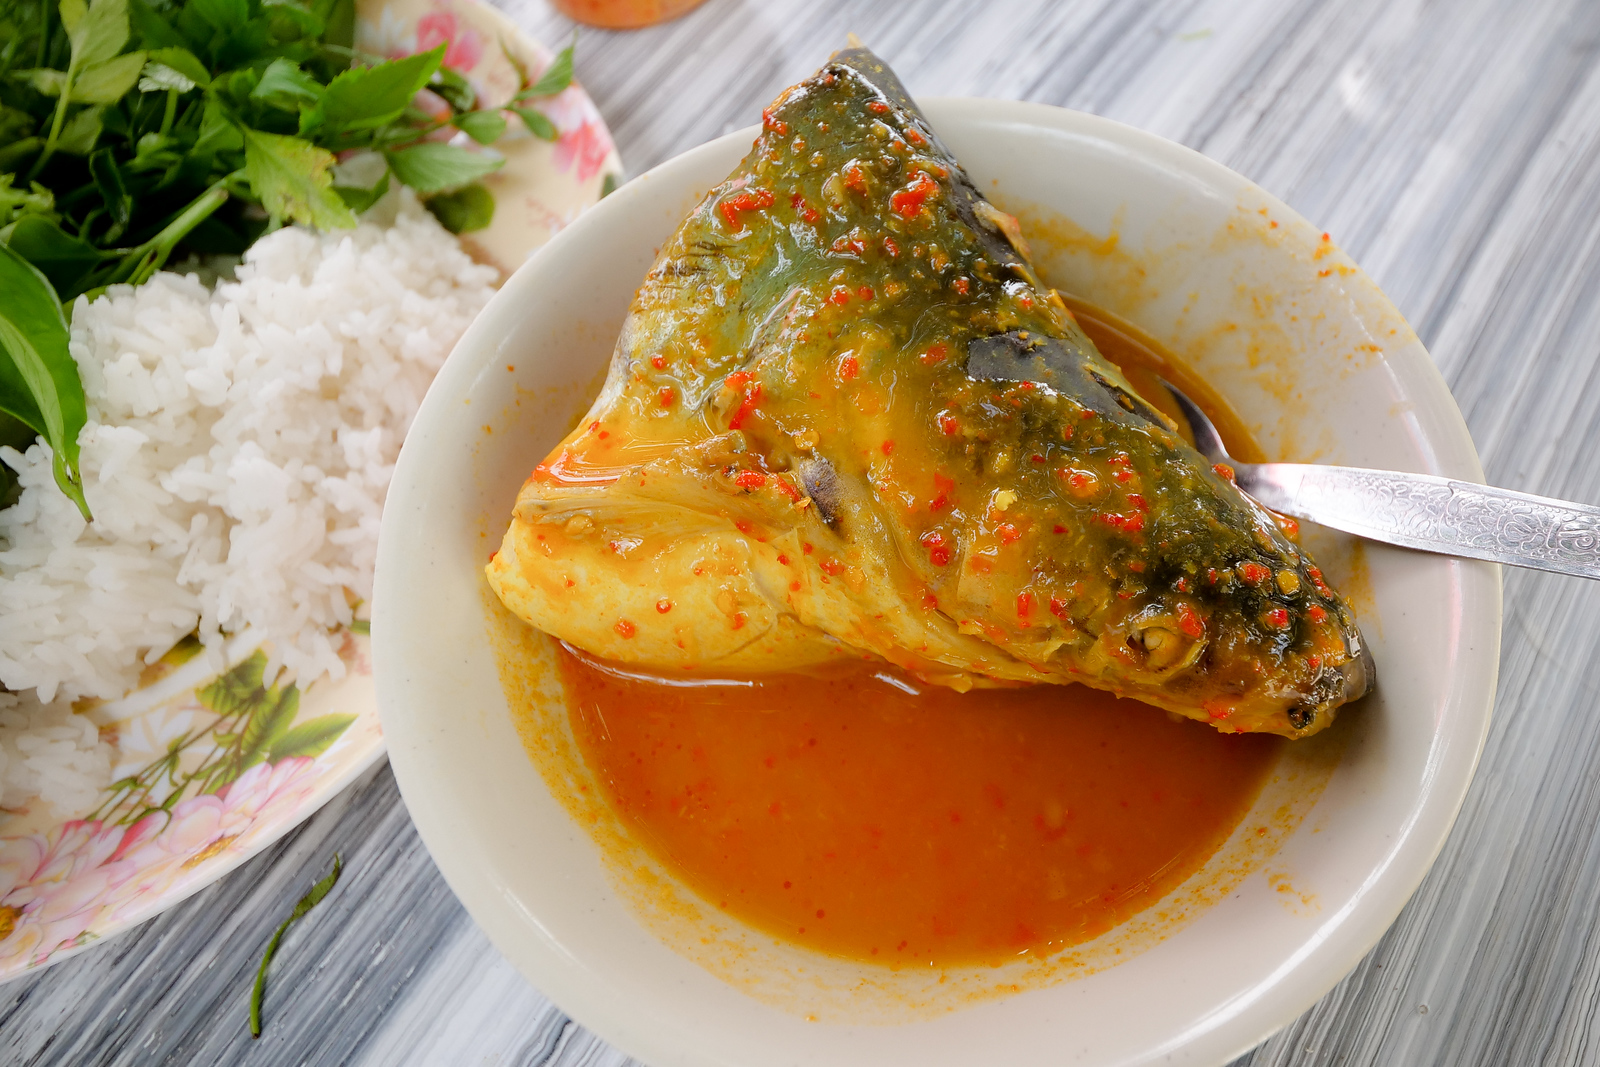 Amazing meals of Tempoyak in Temerloh, Malaysia are a reason to travel for food